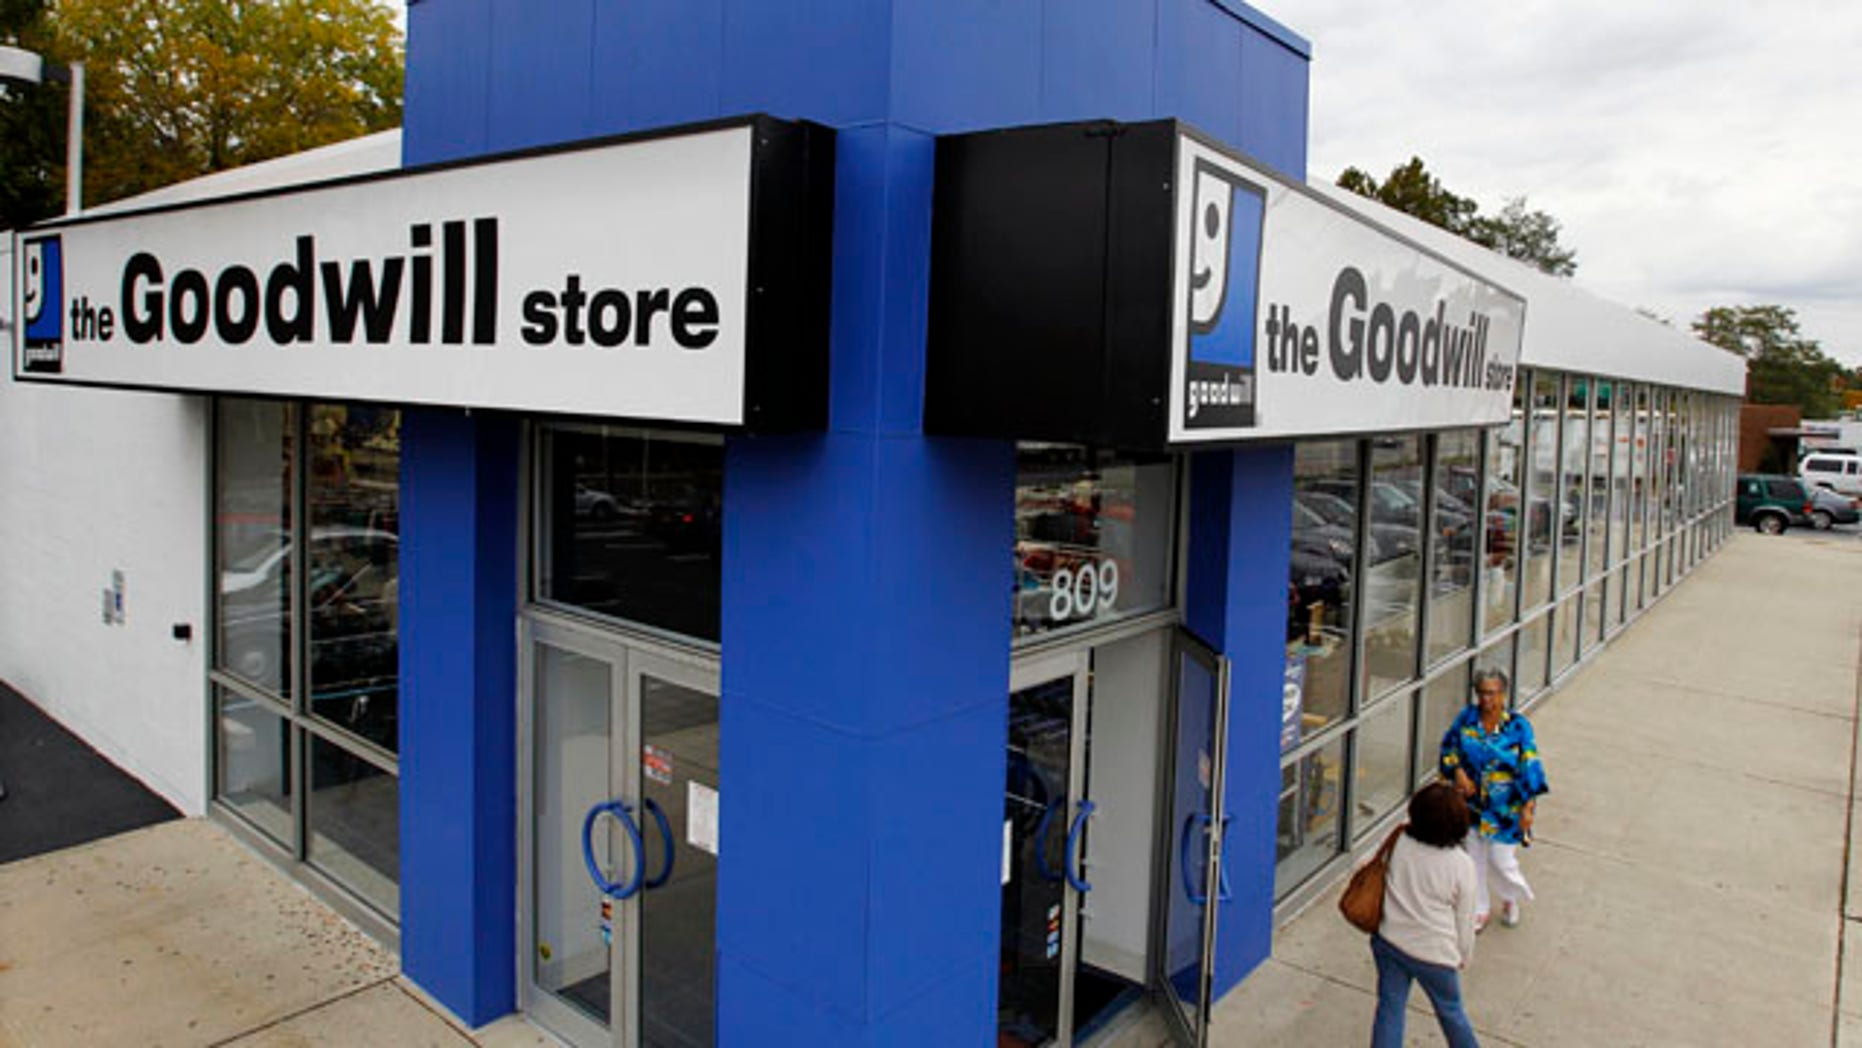 Oct. 14: Shoppers go into a Goodwill store in Paramus, N.J. The Paramus store is one of 100 new locations for the non-profit chain--many are in middle-class suburbs.